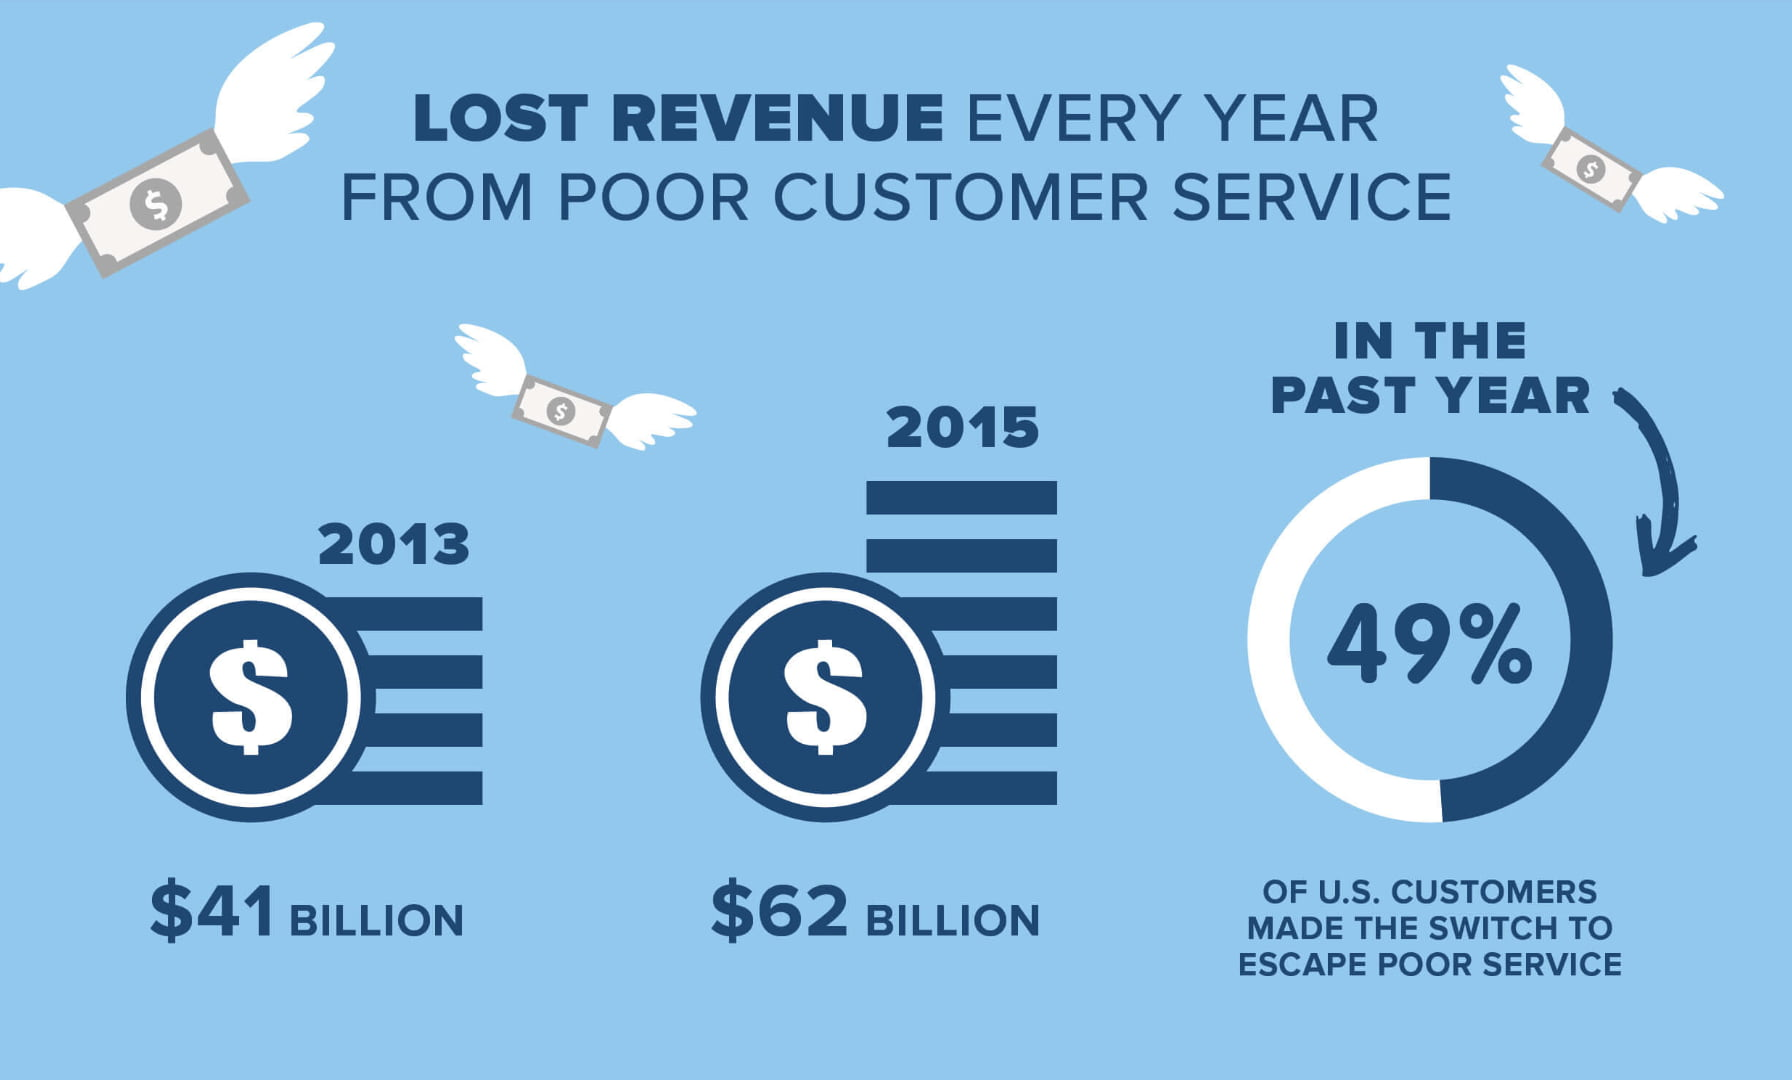 Lost revenue from poor customer service